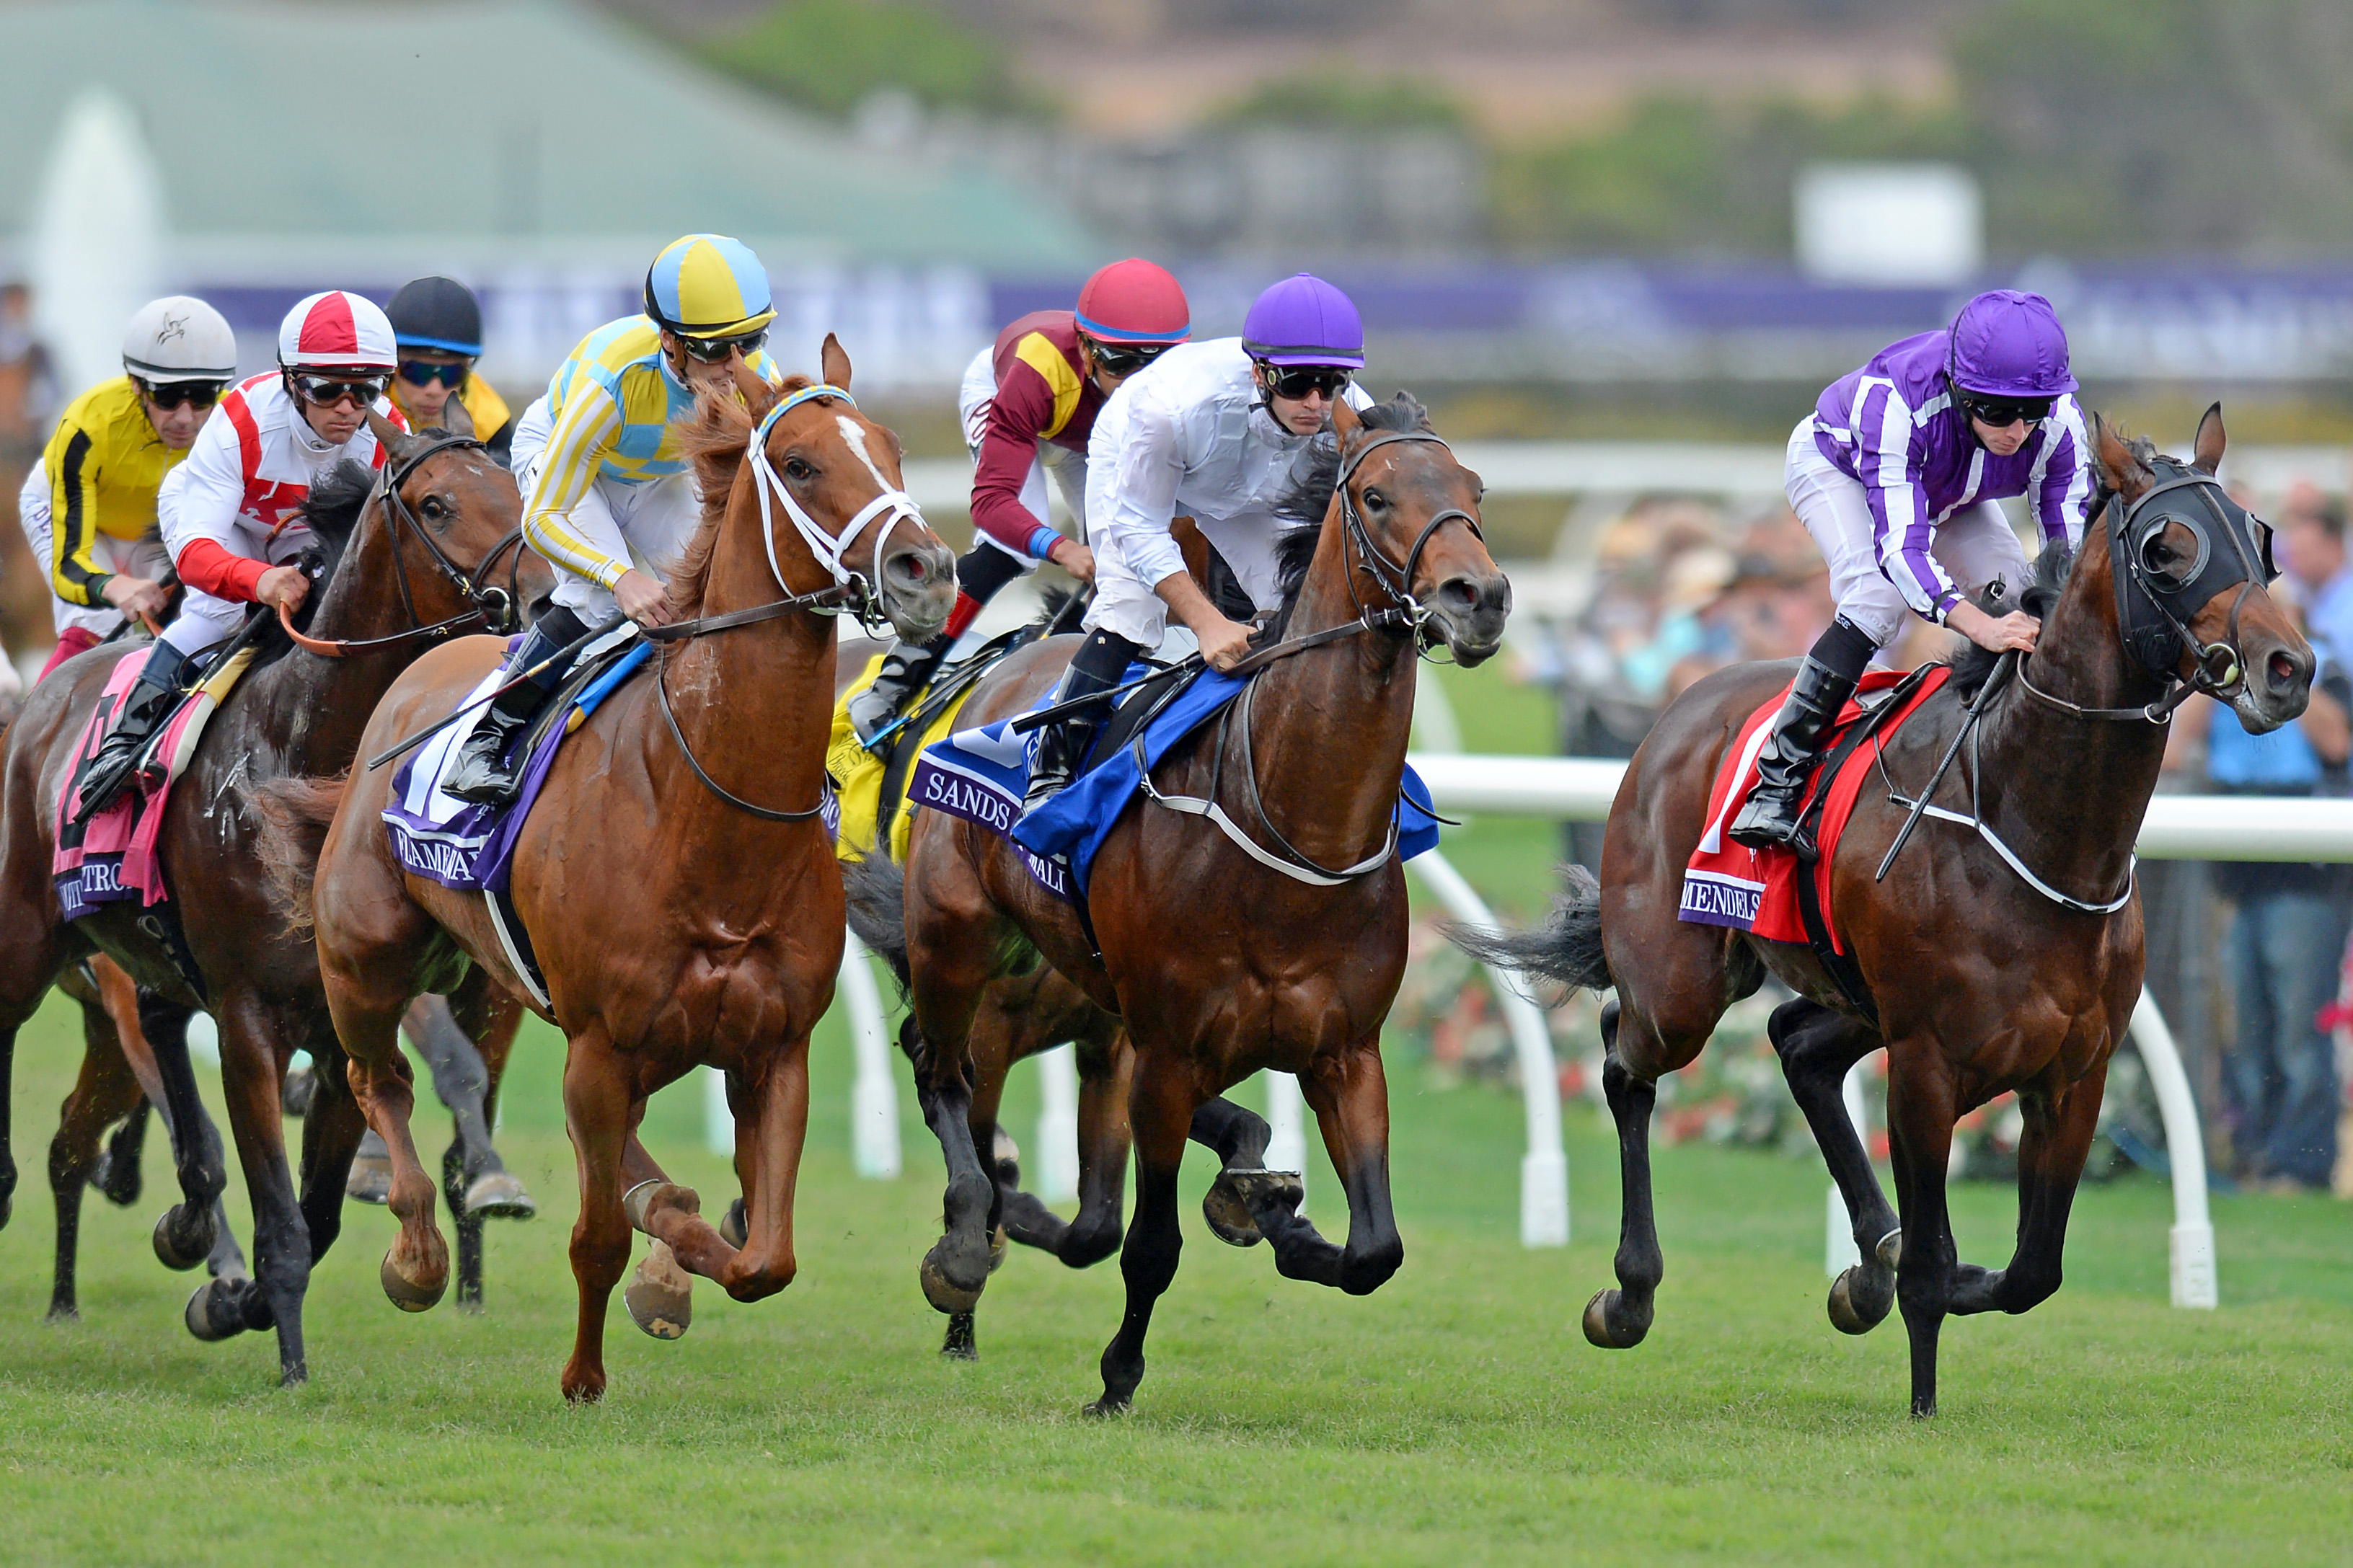 Horse Racing: 34th Breeders Cup World Championships